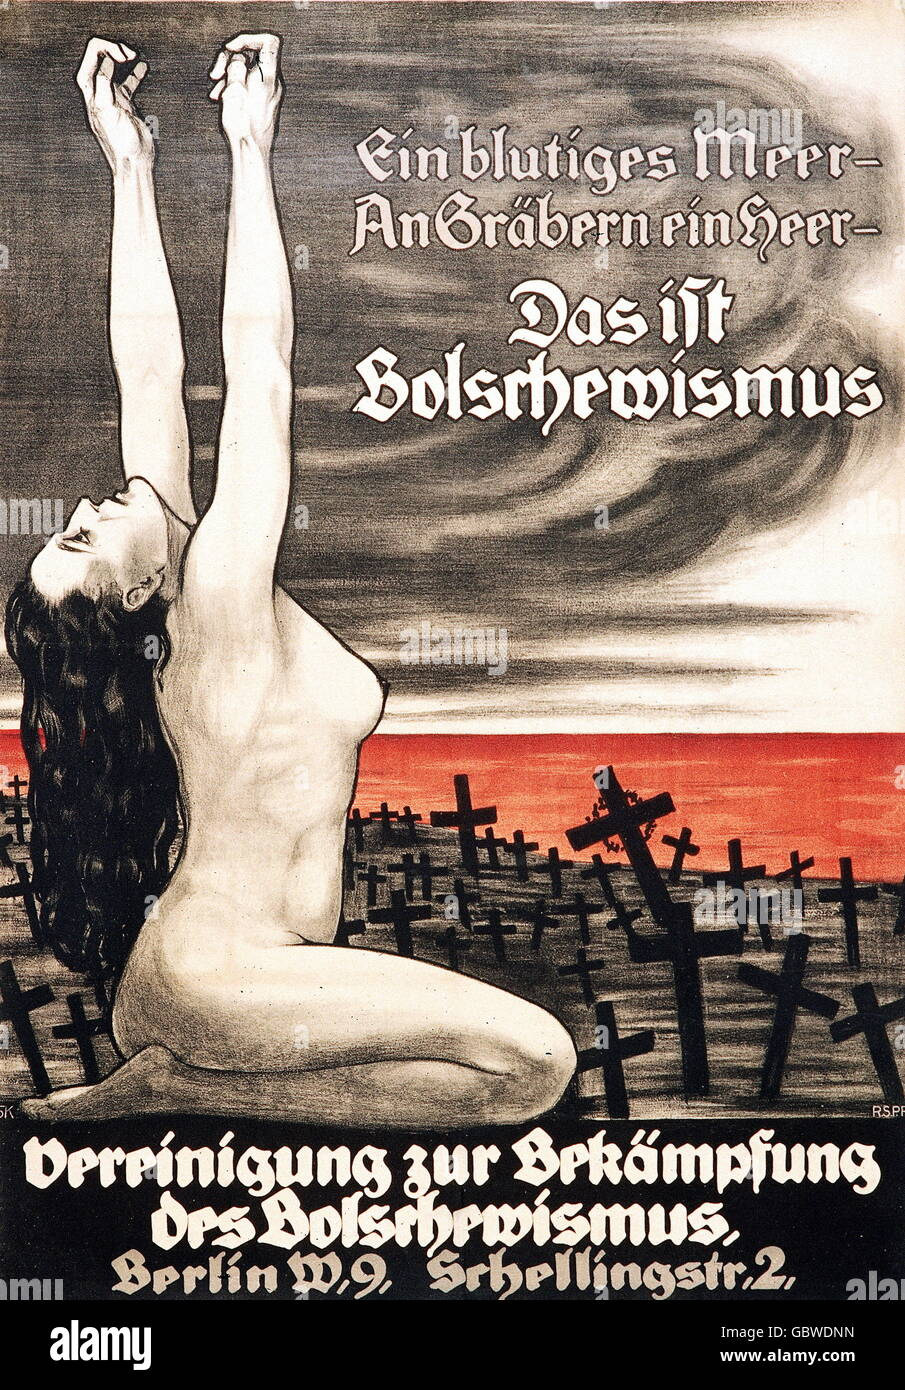 geography / travel, Germany, politics, propaganda against communism, poster of the union of force against the Bolshevism, - Stock Image